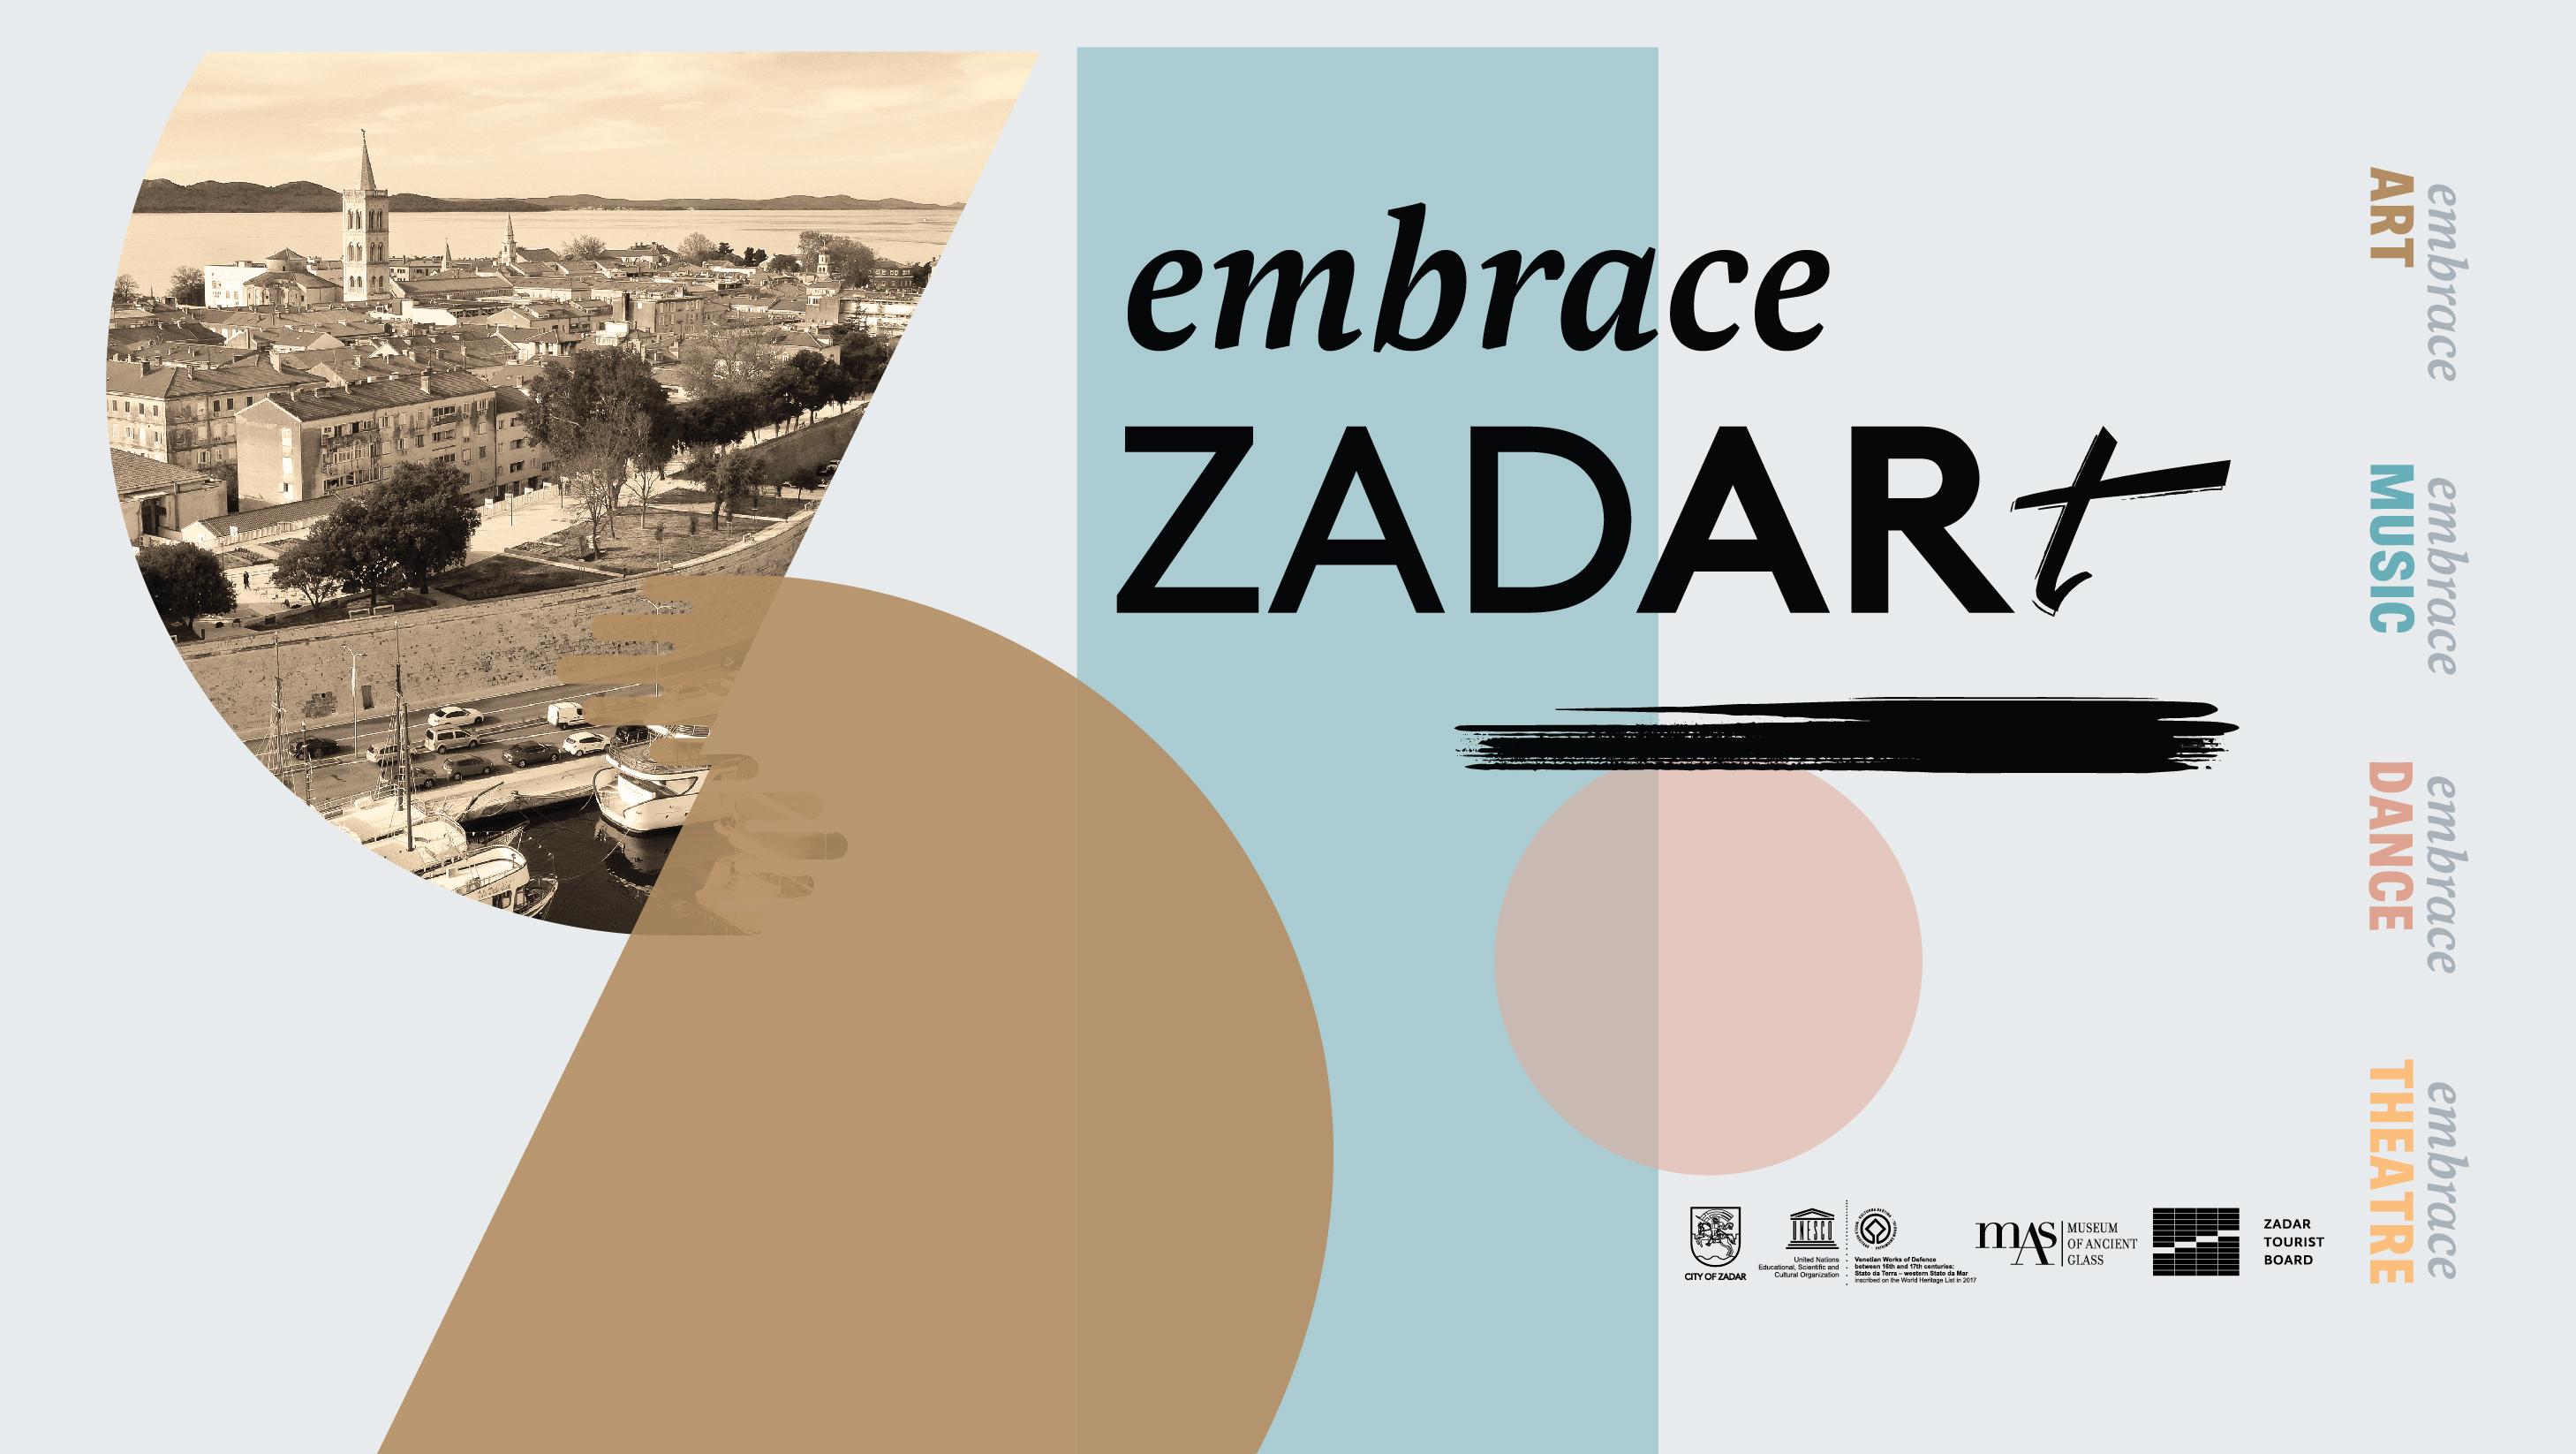 City of Zadar celebrated fourth anniversary of the inscription of its city walls into UNESCO World Heritage List